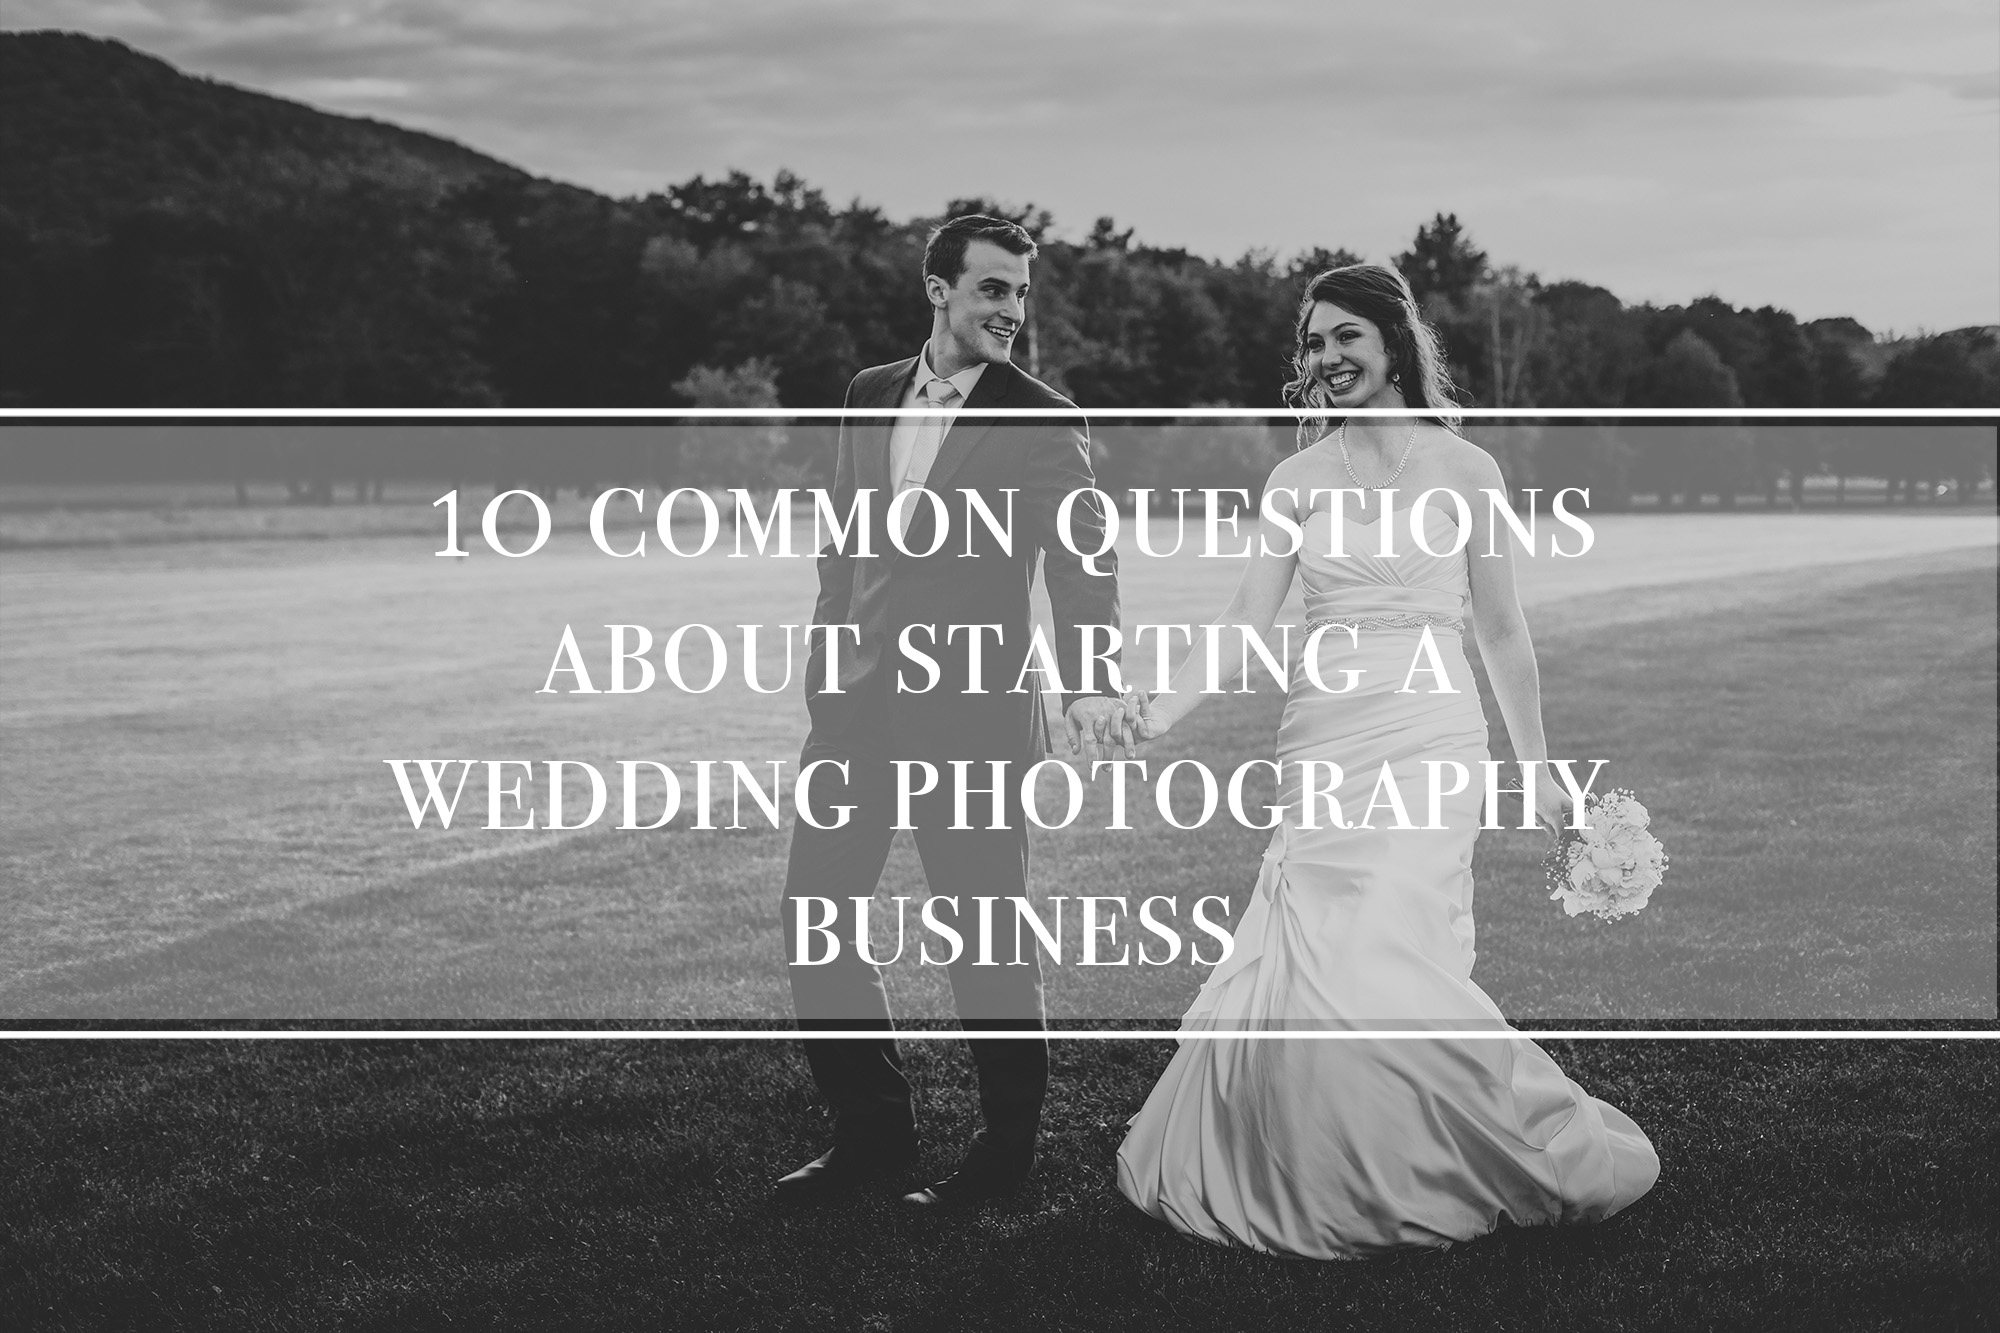 10-most-common-questions-about-starting-a-wedding-photography-business